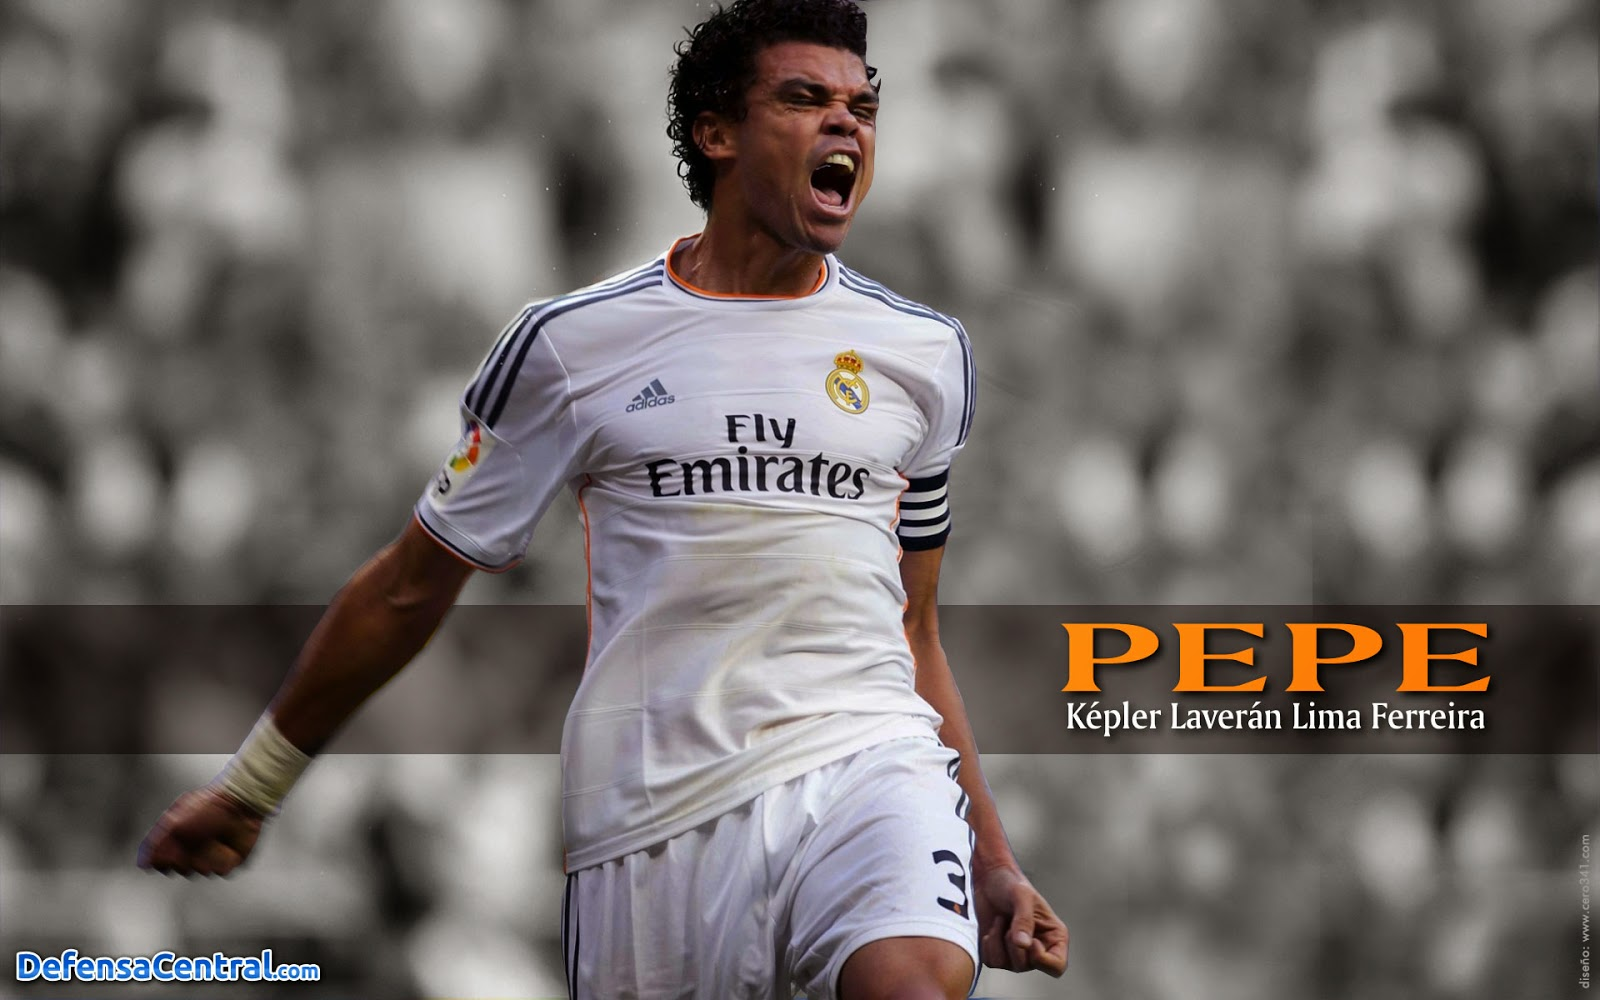 Pepe Real Madrid Wallpaper HD 2014 FULL HD High Definition 1600x1000